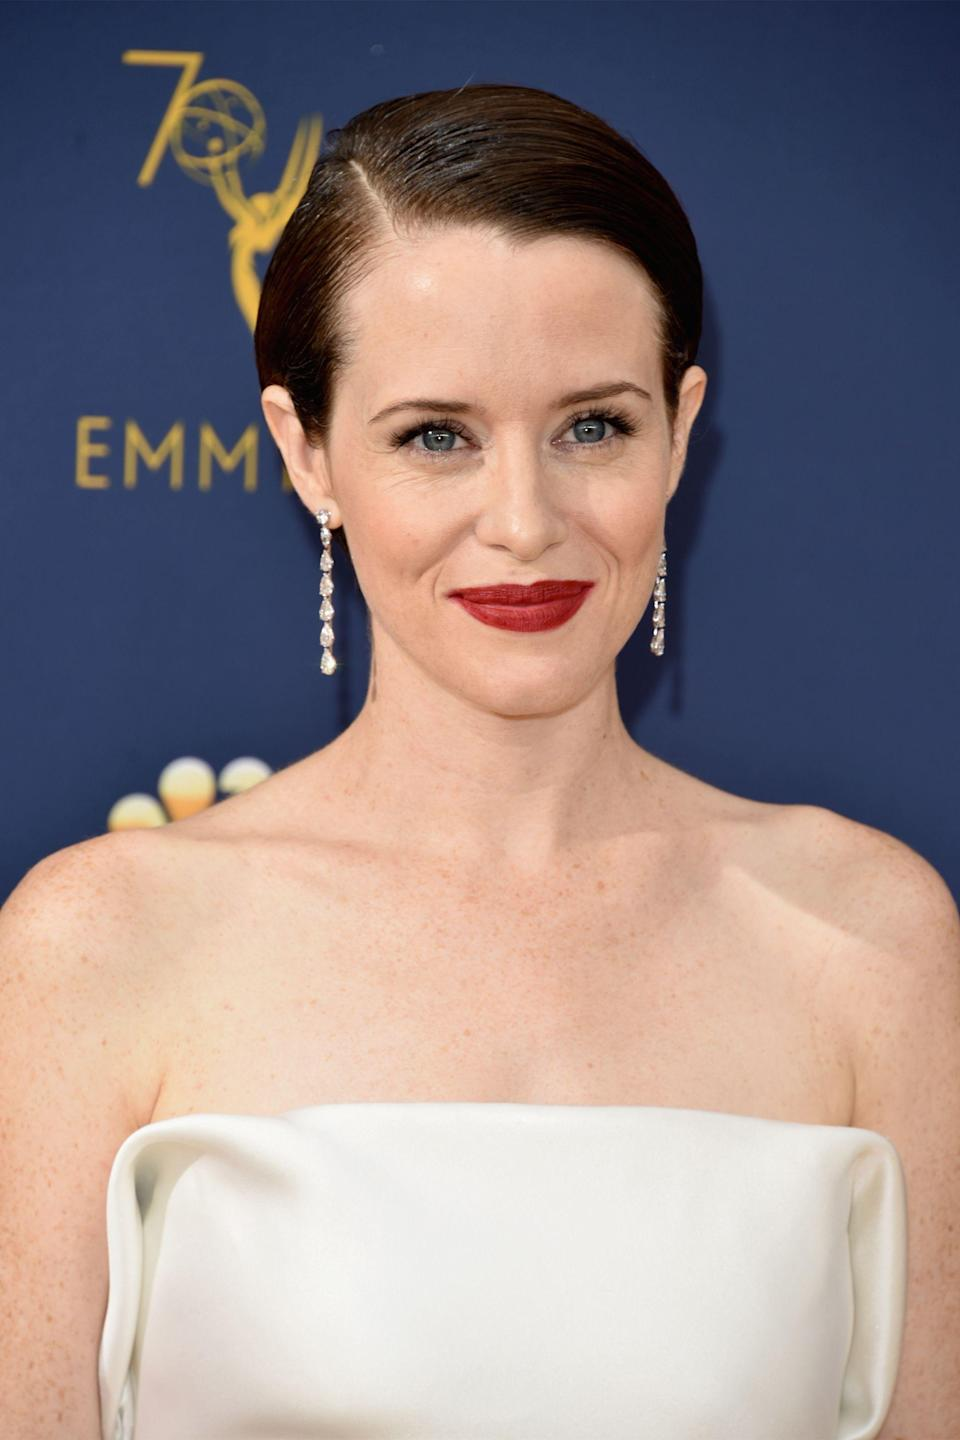 """<p>Claire Foy clearly also got the <a href=""""https://www.refinery29.com/en-us/2018/09/210191/celebrity-red-lipstick-trend-emmys-2018"""" rel=""""nofollow noopener"""" target=""""_blank"""" data-ylk=""""slk:red lipstick"""" class=""""link rapid-noclick-resp"""">red lipstick</a> memo. The actress walked the carpet in a deep crimson shade that popped against her ivory Calvin Klein gown.</p><span class=""""copyright"""">Photo: John Shearer/Getty Images.</span>"""